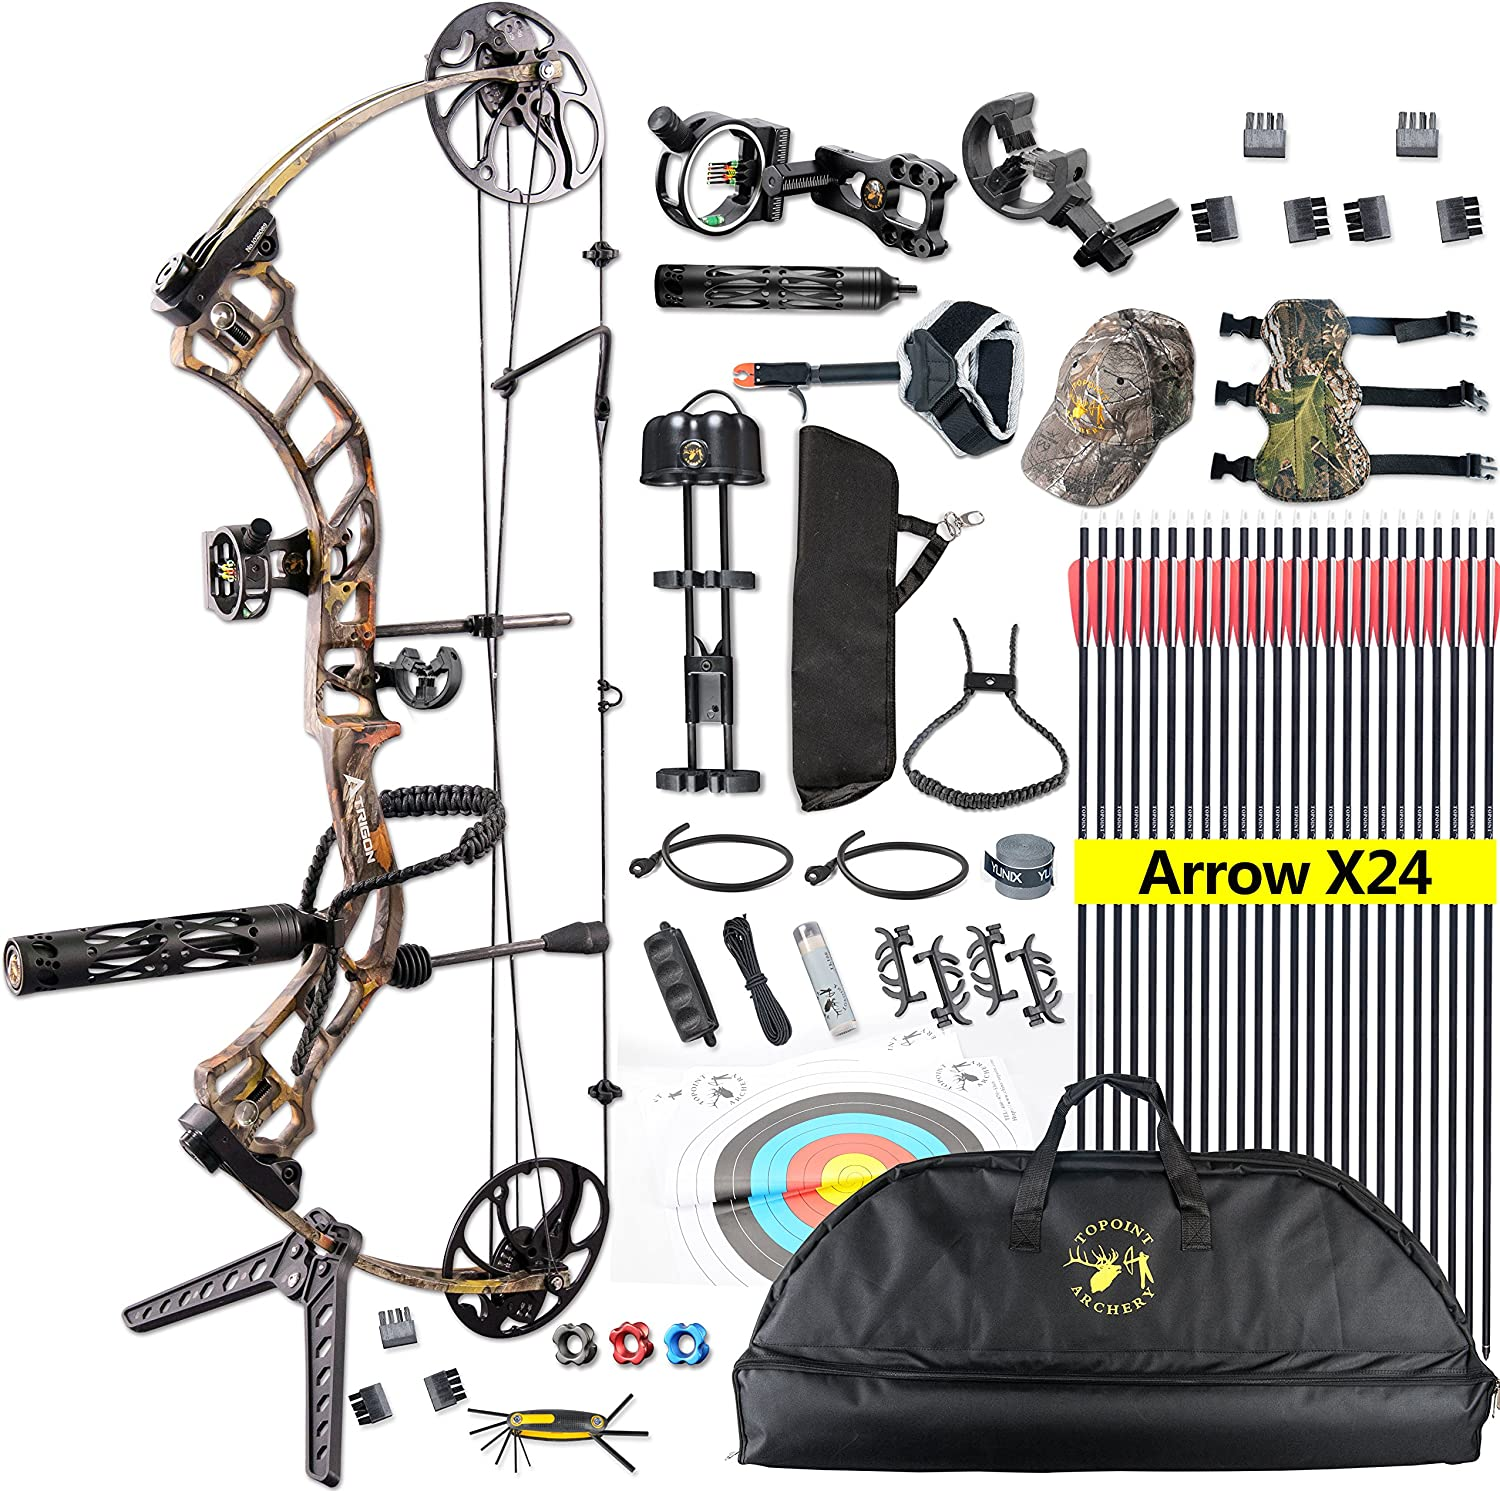 TOPOINT Ship from USA Archery Trigon Compound Bow Package,CNC Milling Bow Riser,USA Gordon Composites Limb,BCY String,19 -30 Draw Length,19-70Lbs Draw Weight,IBO 320fps